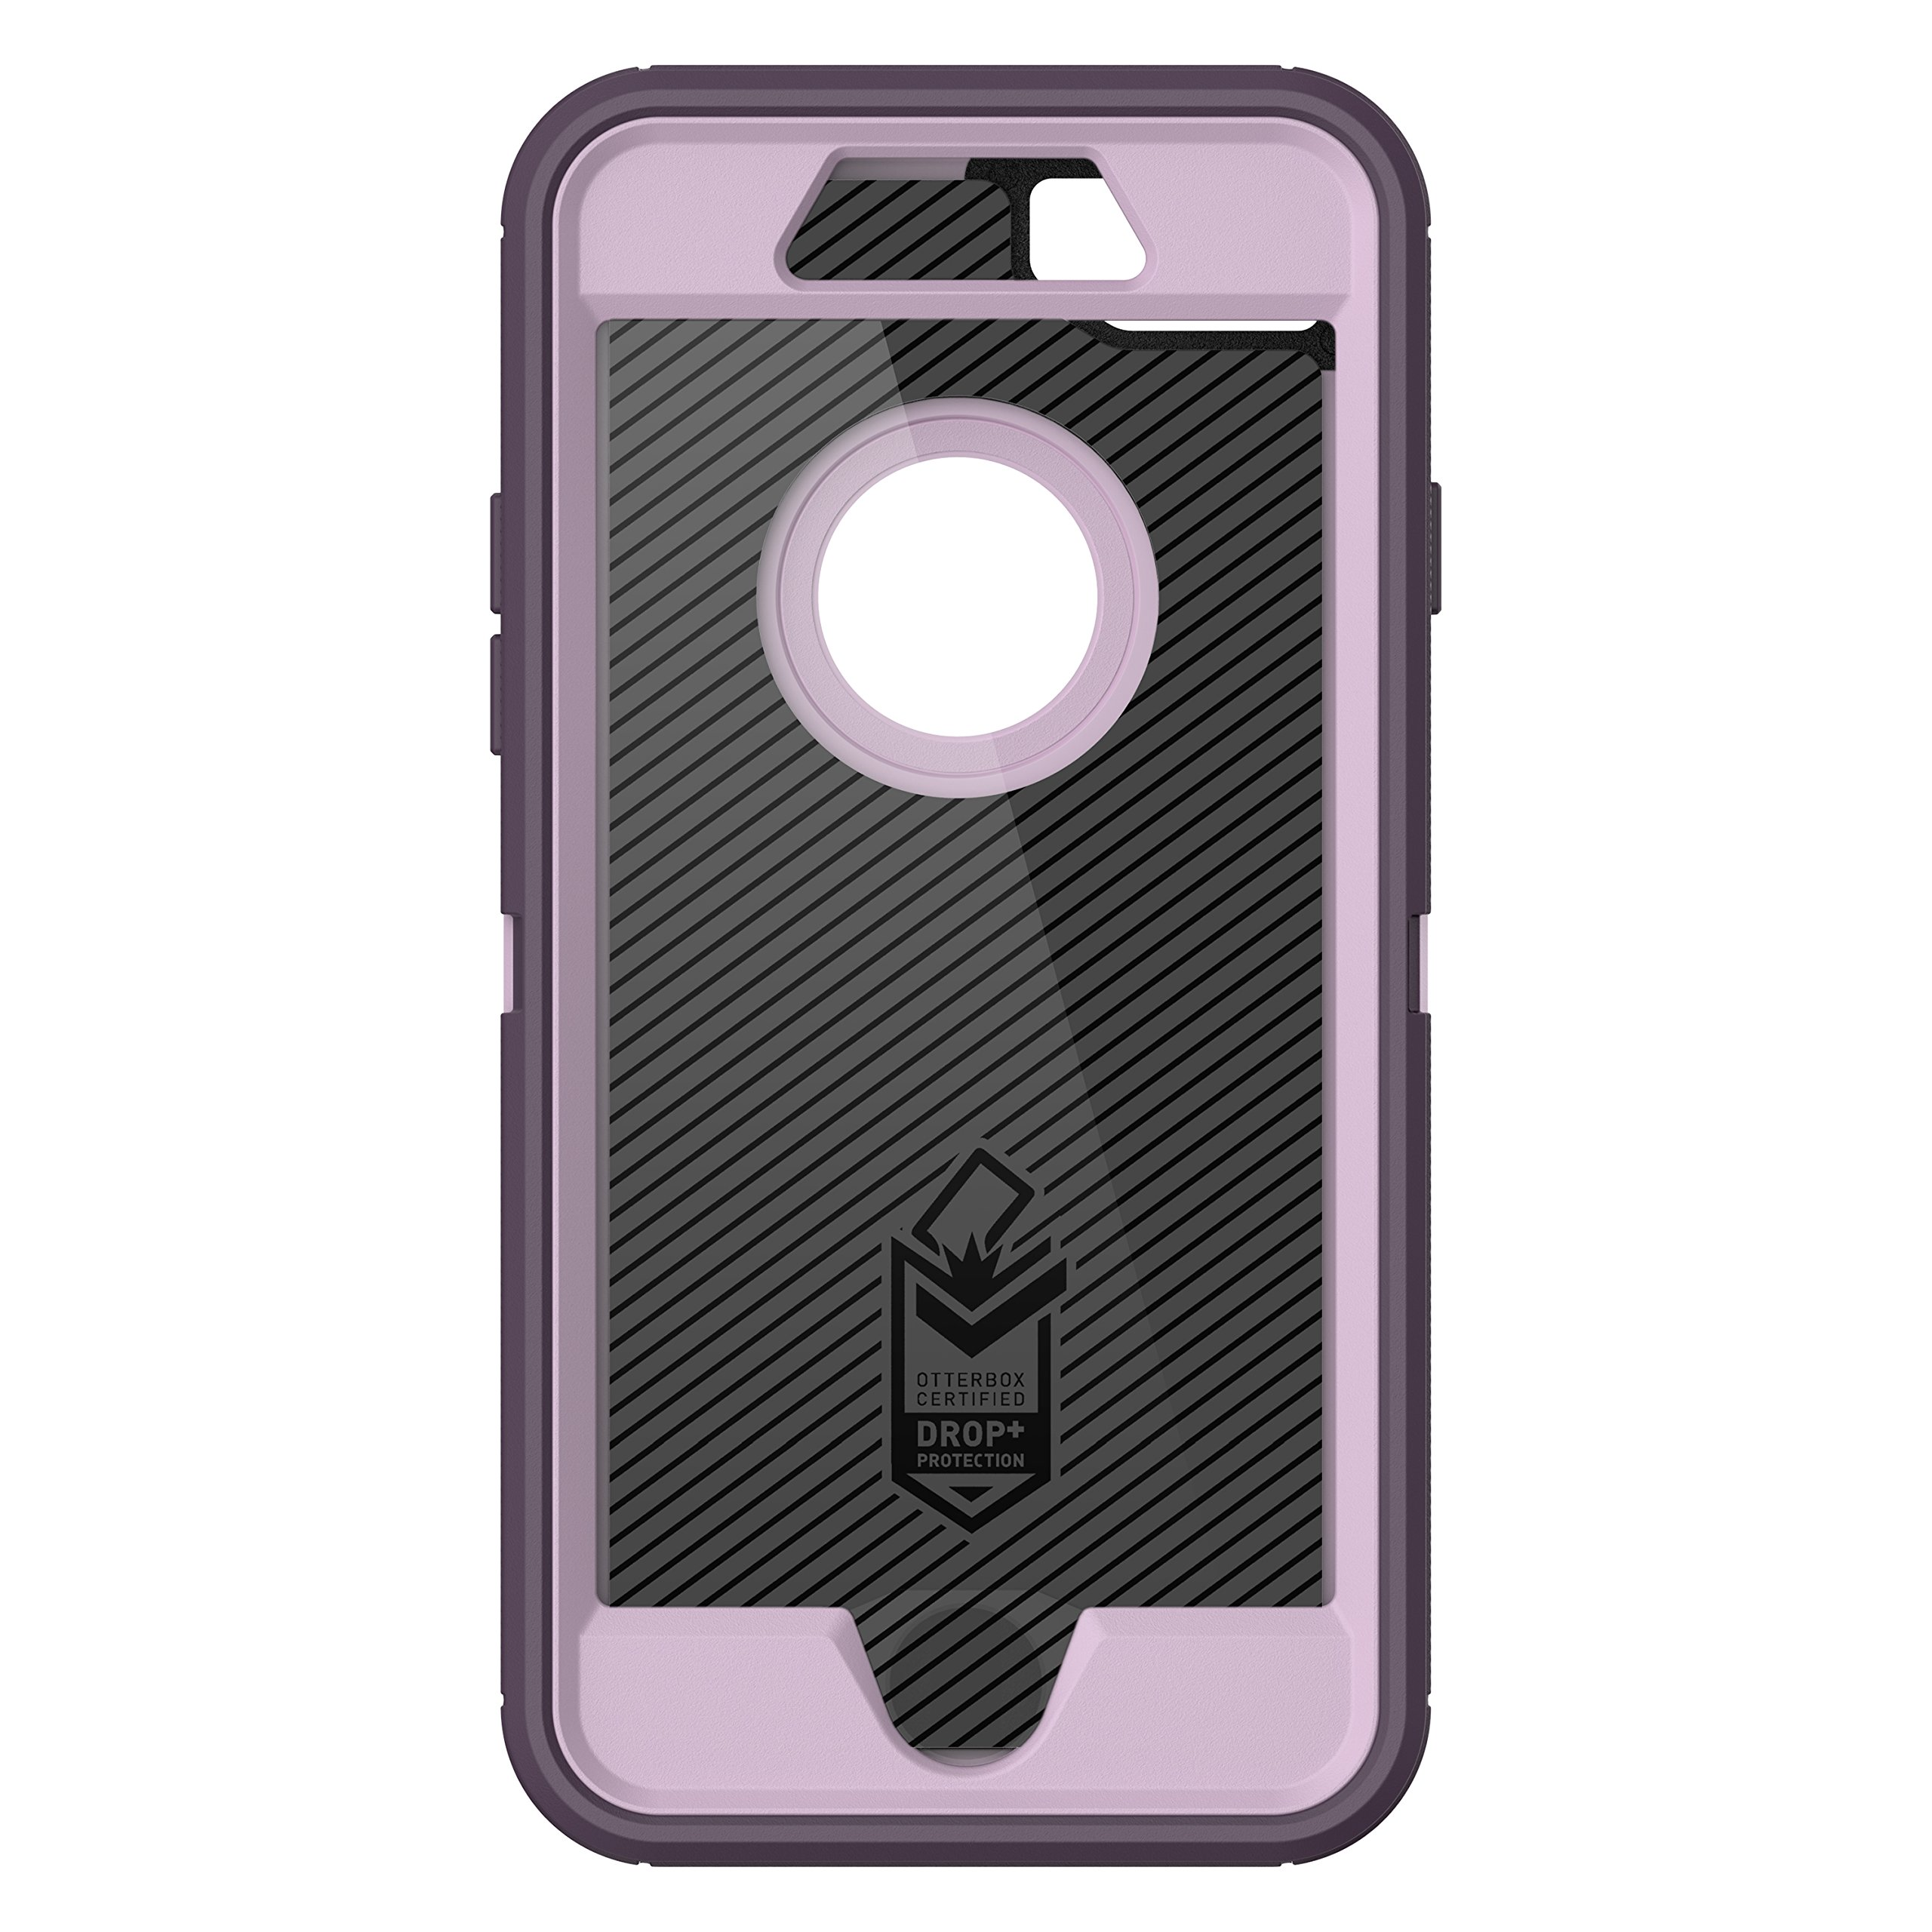 OtterBox DEFENDER SERIES Case for iPhone 8 & iPhone 7 (NOT Plus) - Frustration Free Packaging - PURPLE NEBULA (WINSOME ORCHID/NIGHT PURPLE) by OtterBox (Image #4)